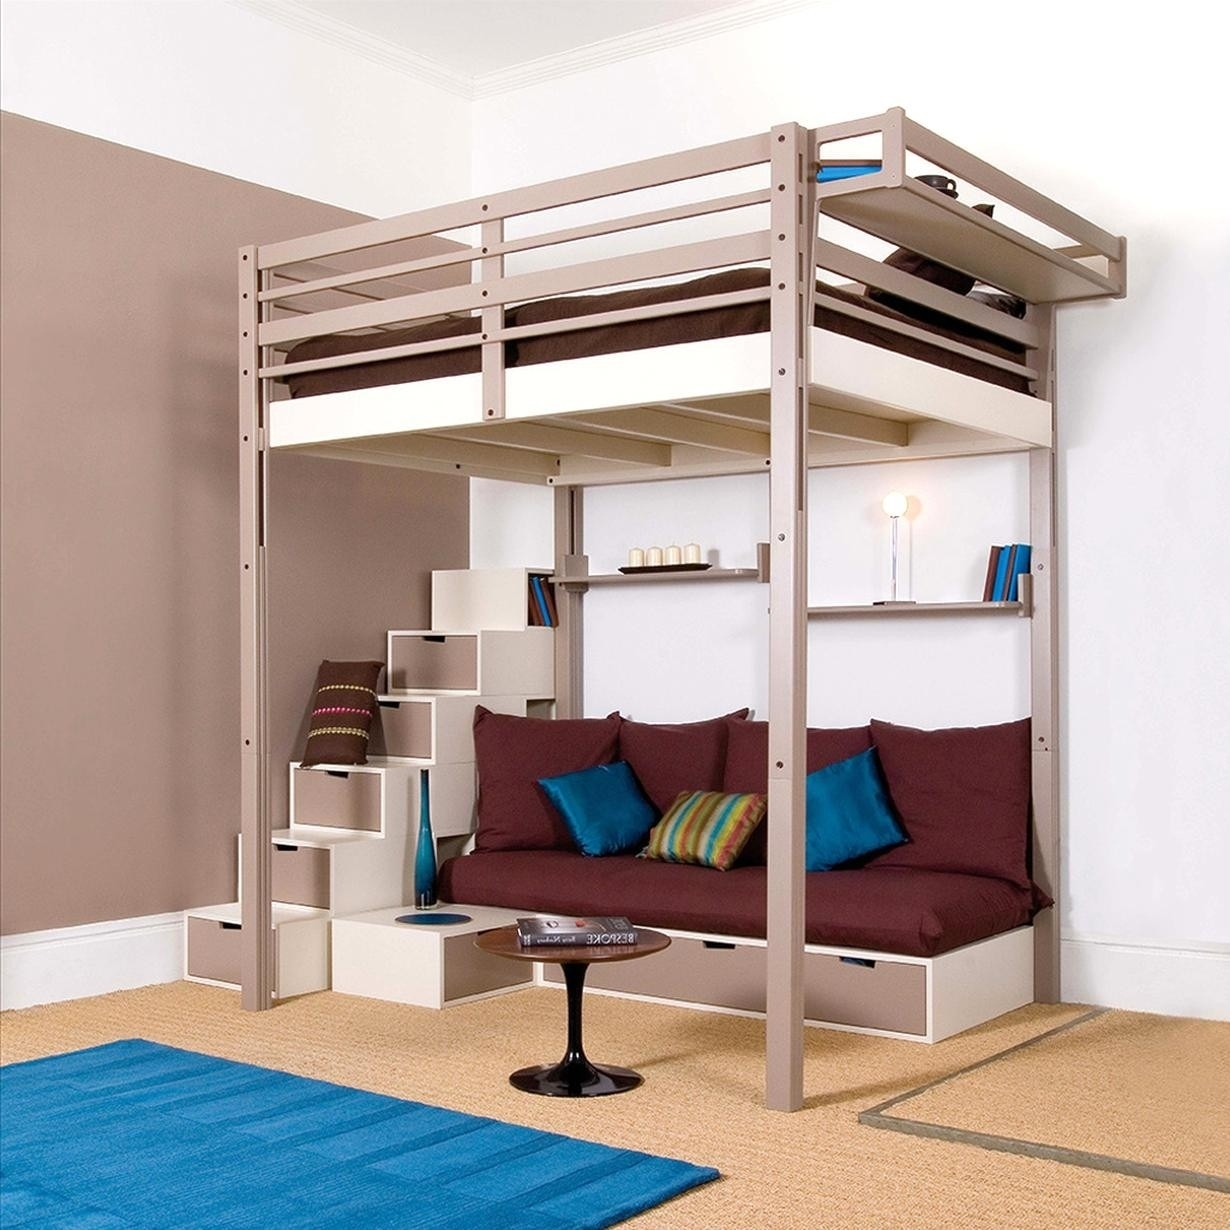 Bunk bed with stairs plans Wood Plans For Loft Bed With Steps Visual Hunt Full Size Loft Bed With Stairs Visual Hunt